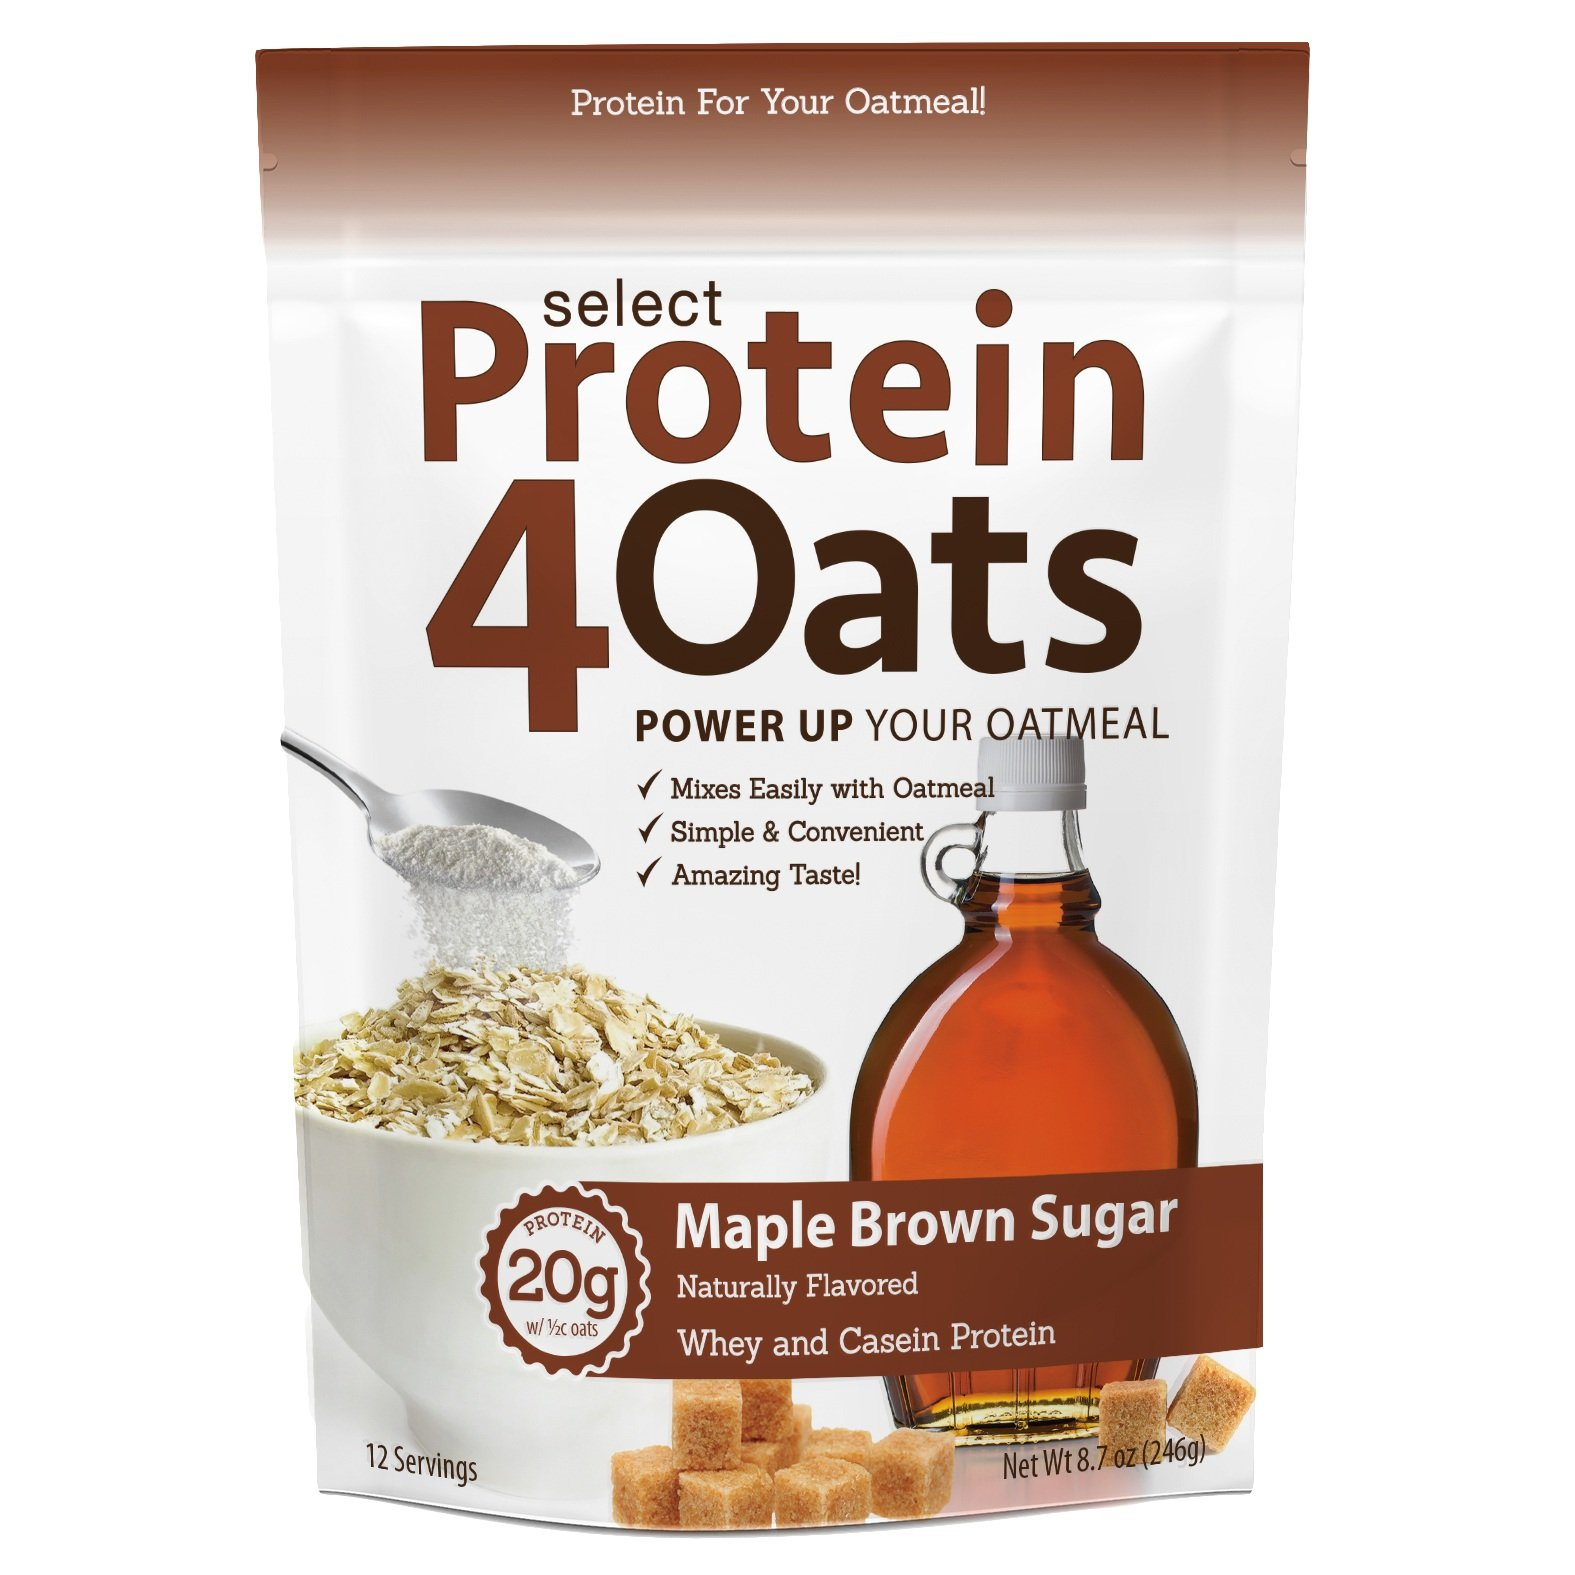 Pescience Select Protein 4 Oats, Maple Brown Sugar, 12 Serving by PEScience